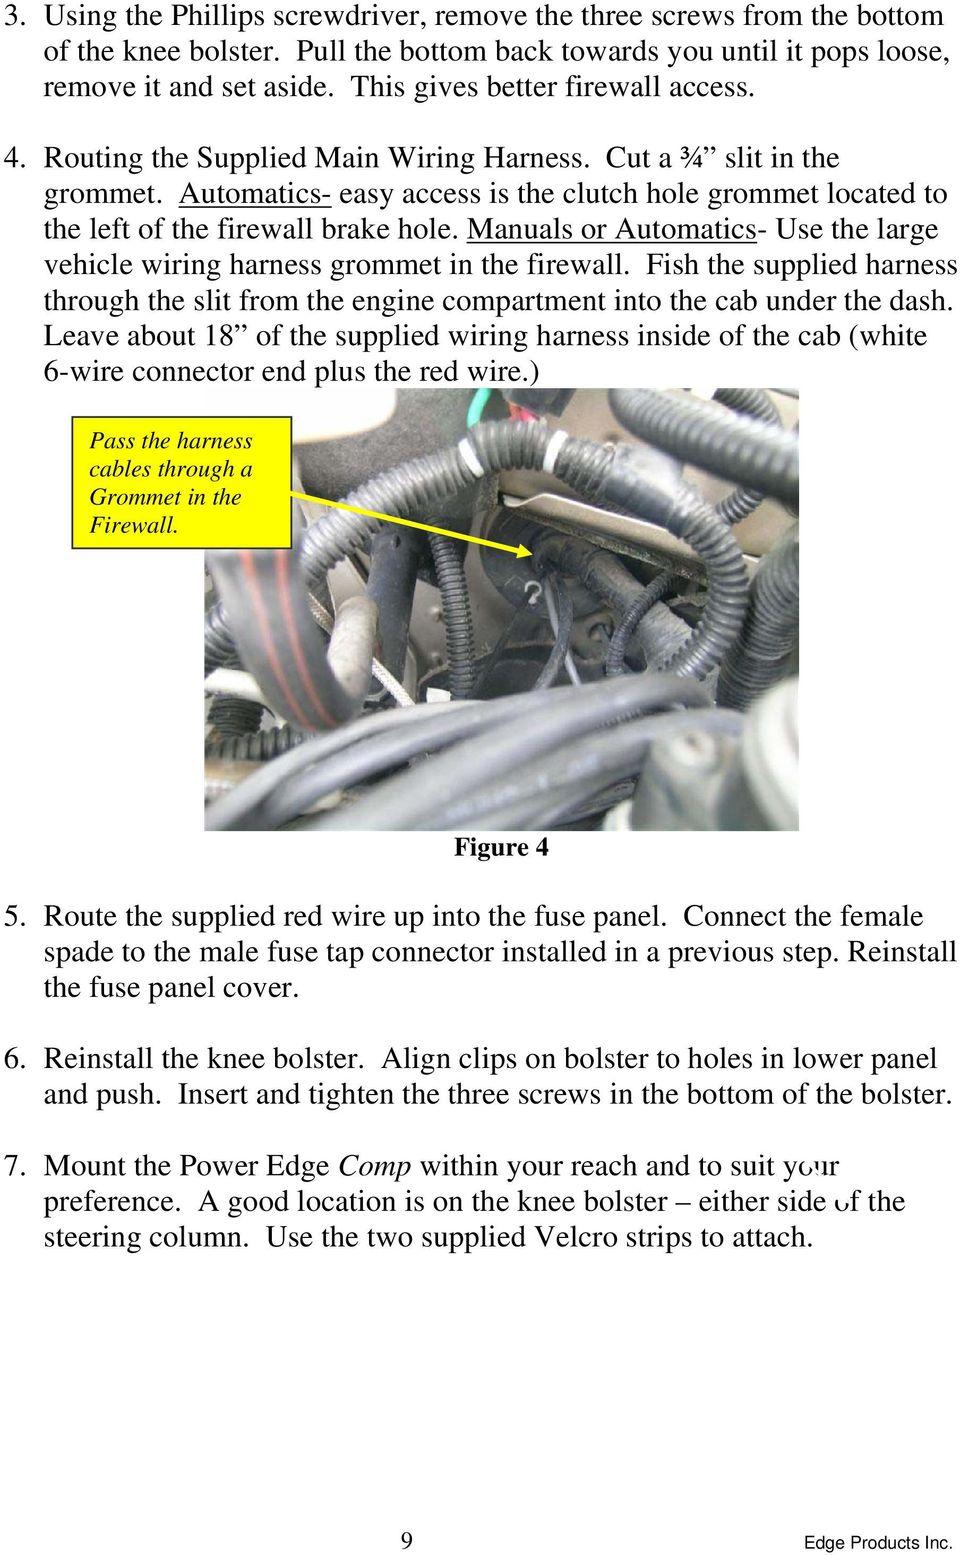 Dodge cummins 59l edge comp module installation instructions automatics easy access is the clutch hole grommet located to the left of the firewall publicscrutiny Choice Image